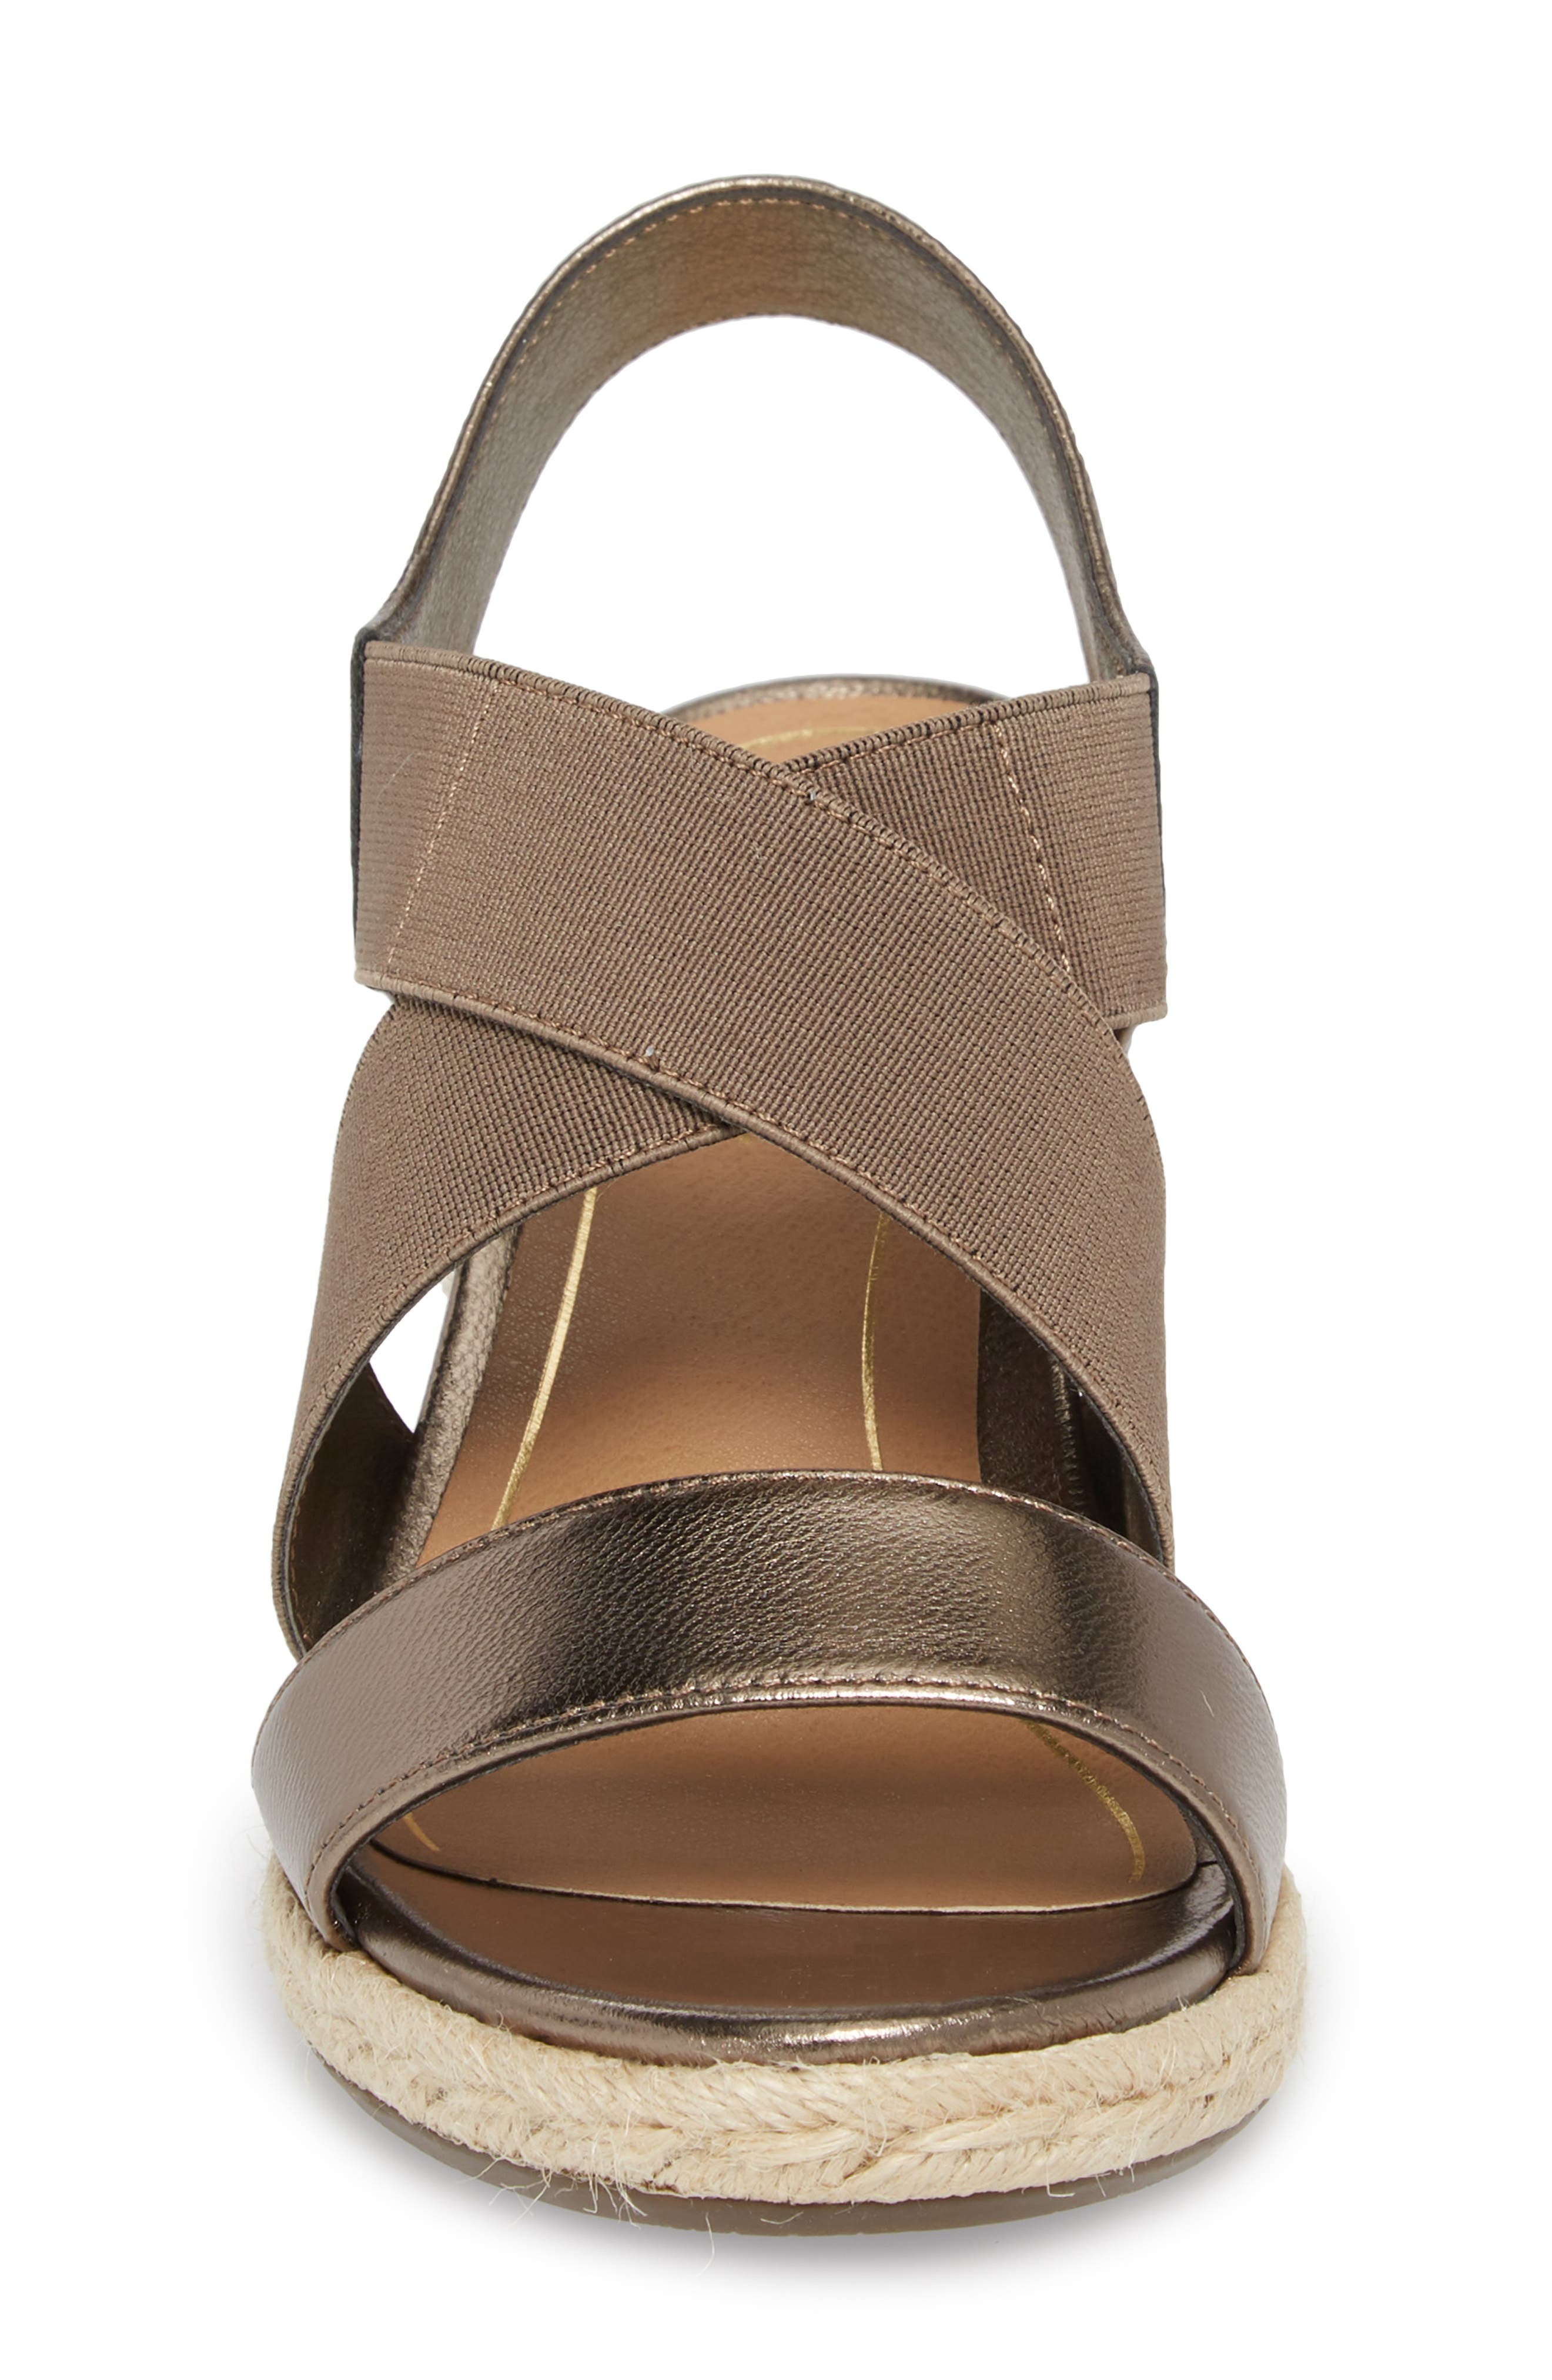 Ainsleigh Wedge Sandal,                             Alternate thumbnail 4, color,                             Dark Taupe Leather